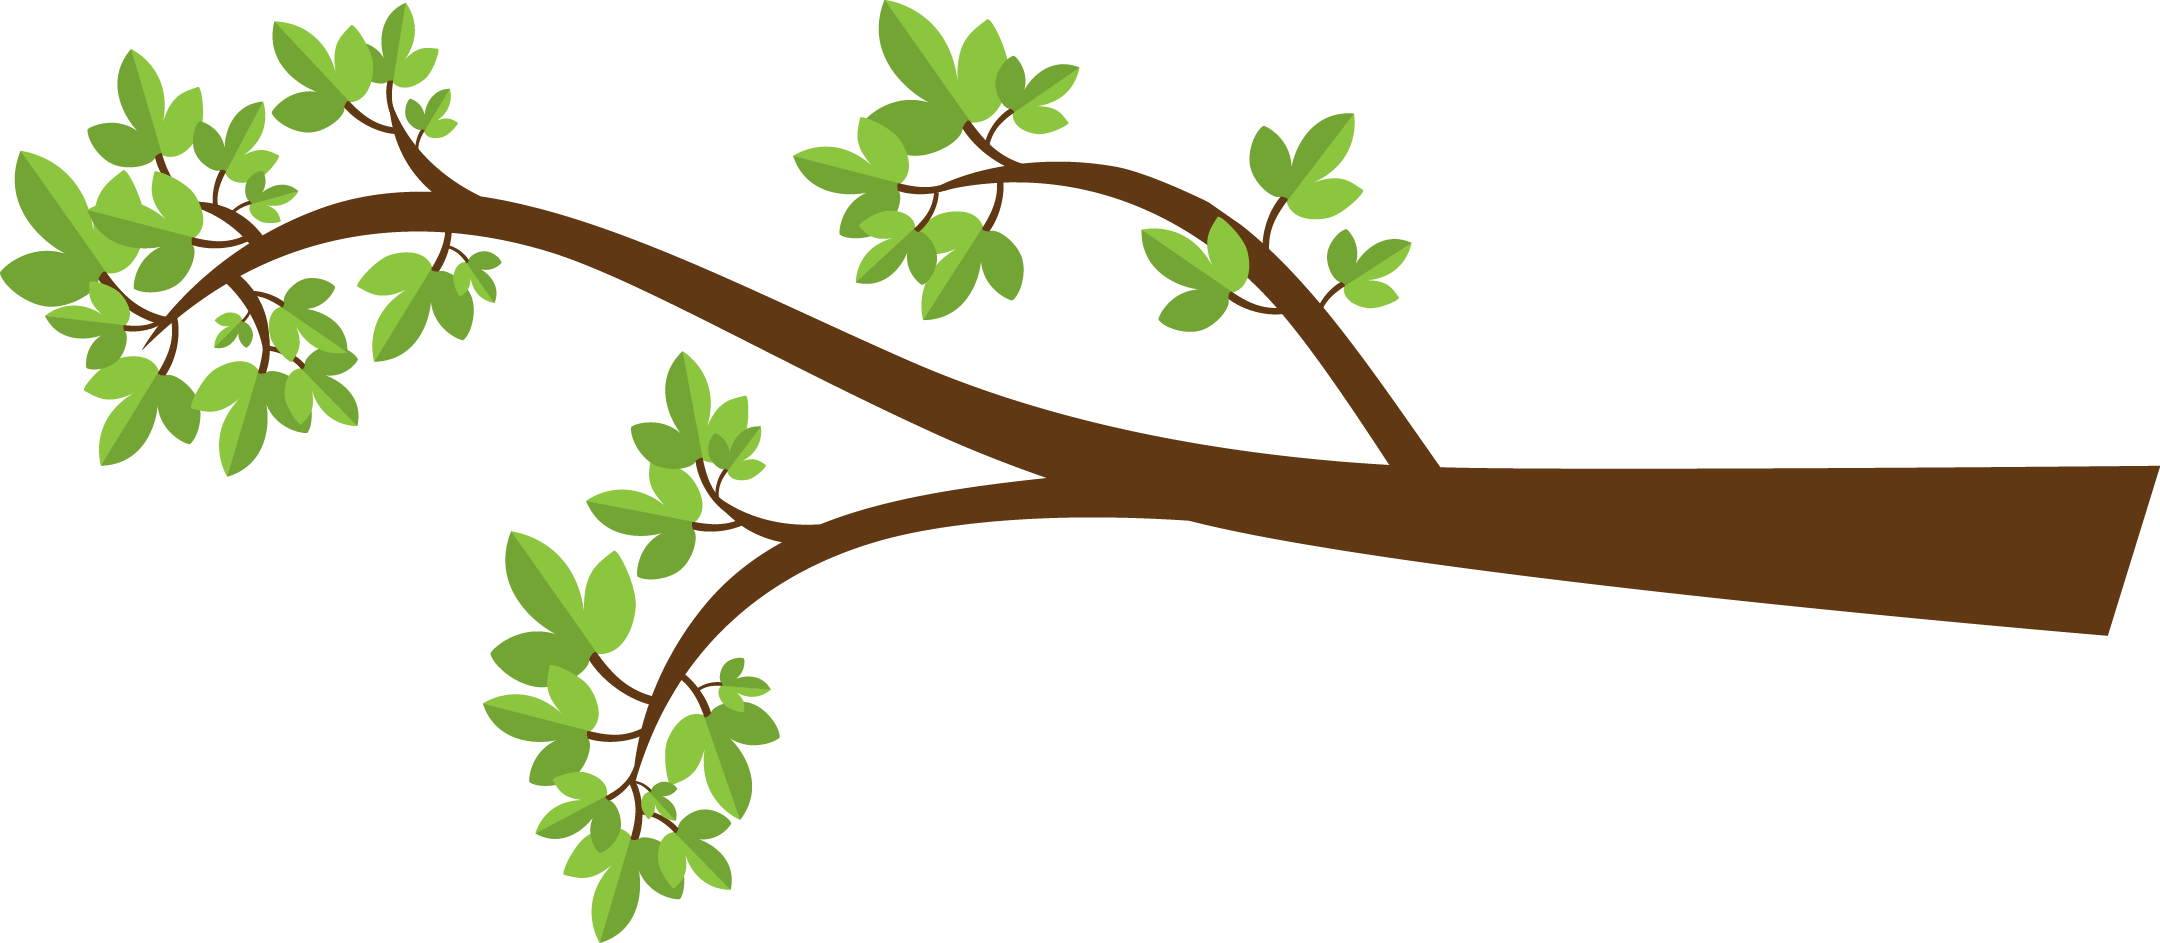 vector free stock Tree a pencil and. Branch clipart.